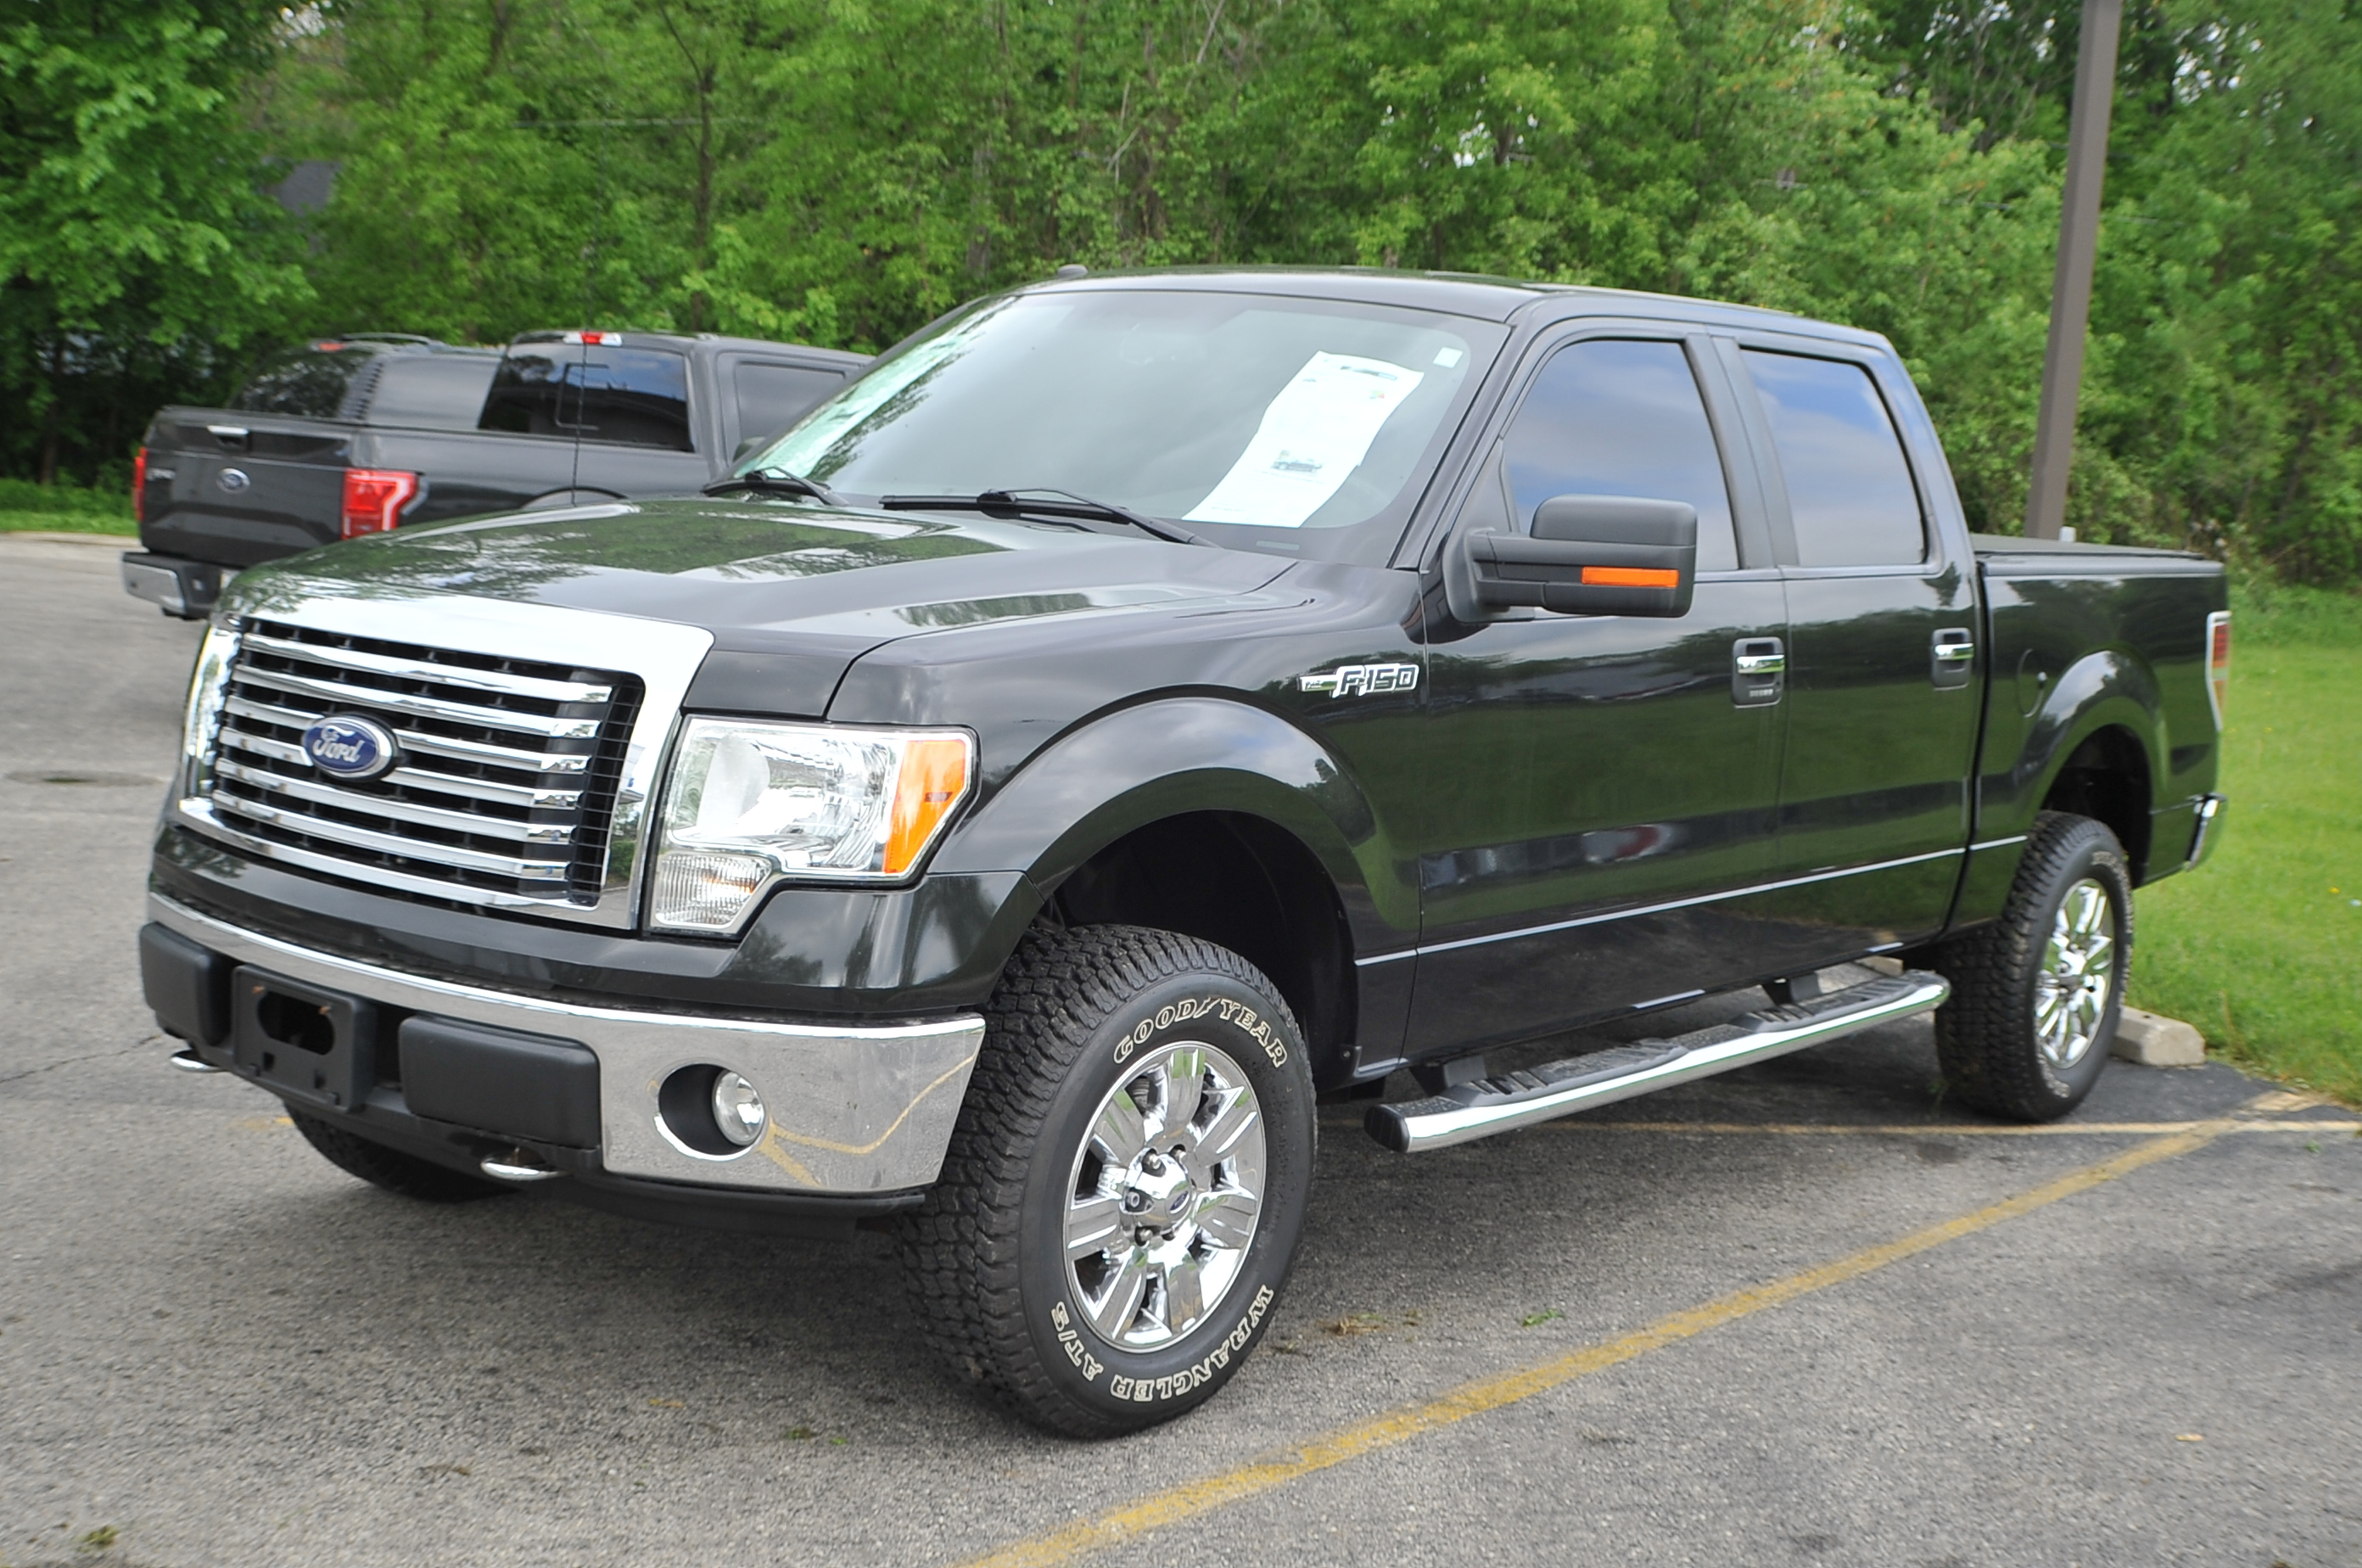 2010 Ford F150 Black 4x4 Super Crew Cab Pickup Truck Sale Zion